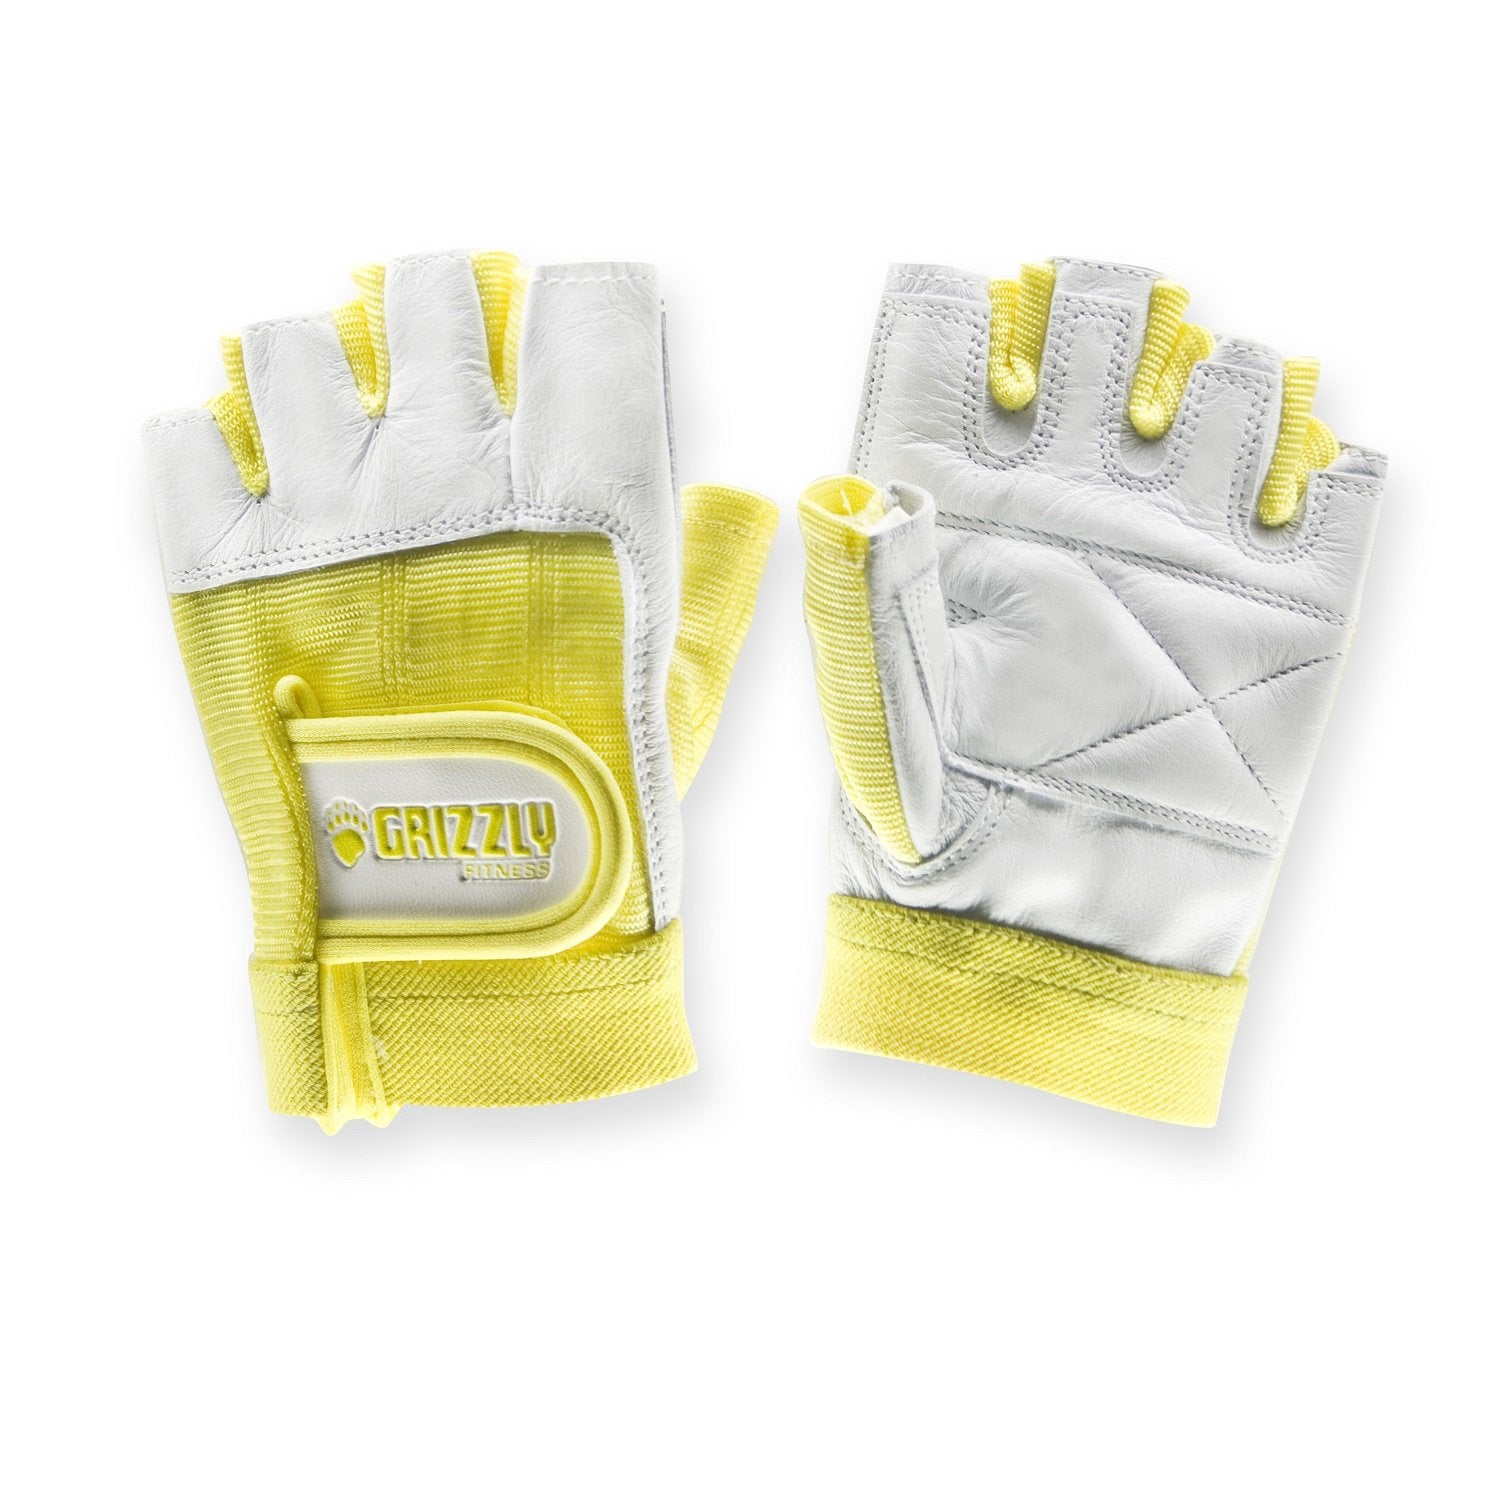 Grizzly Womens Yellow Gym Workout Weight Training Lifting Gloves